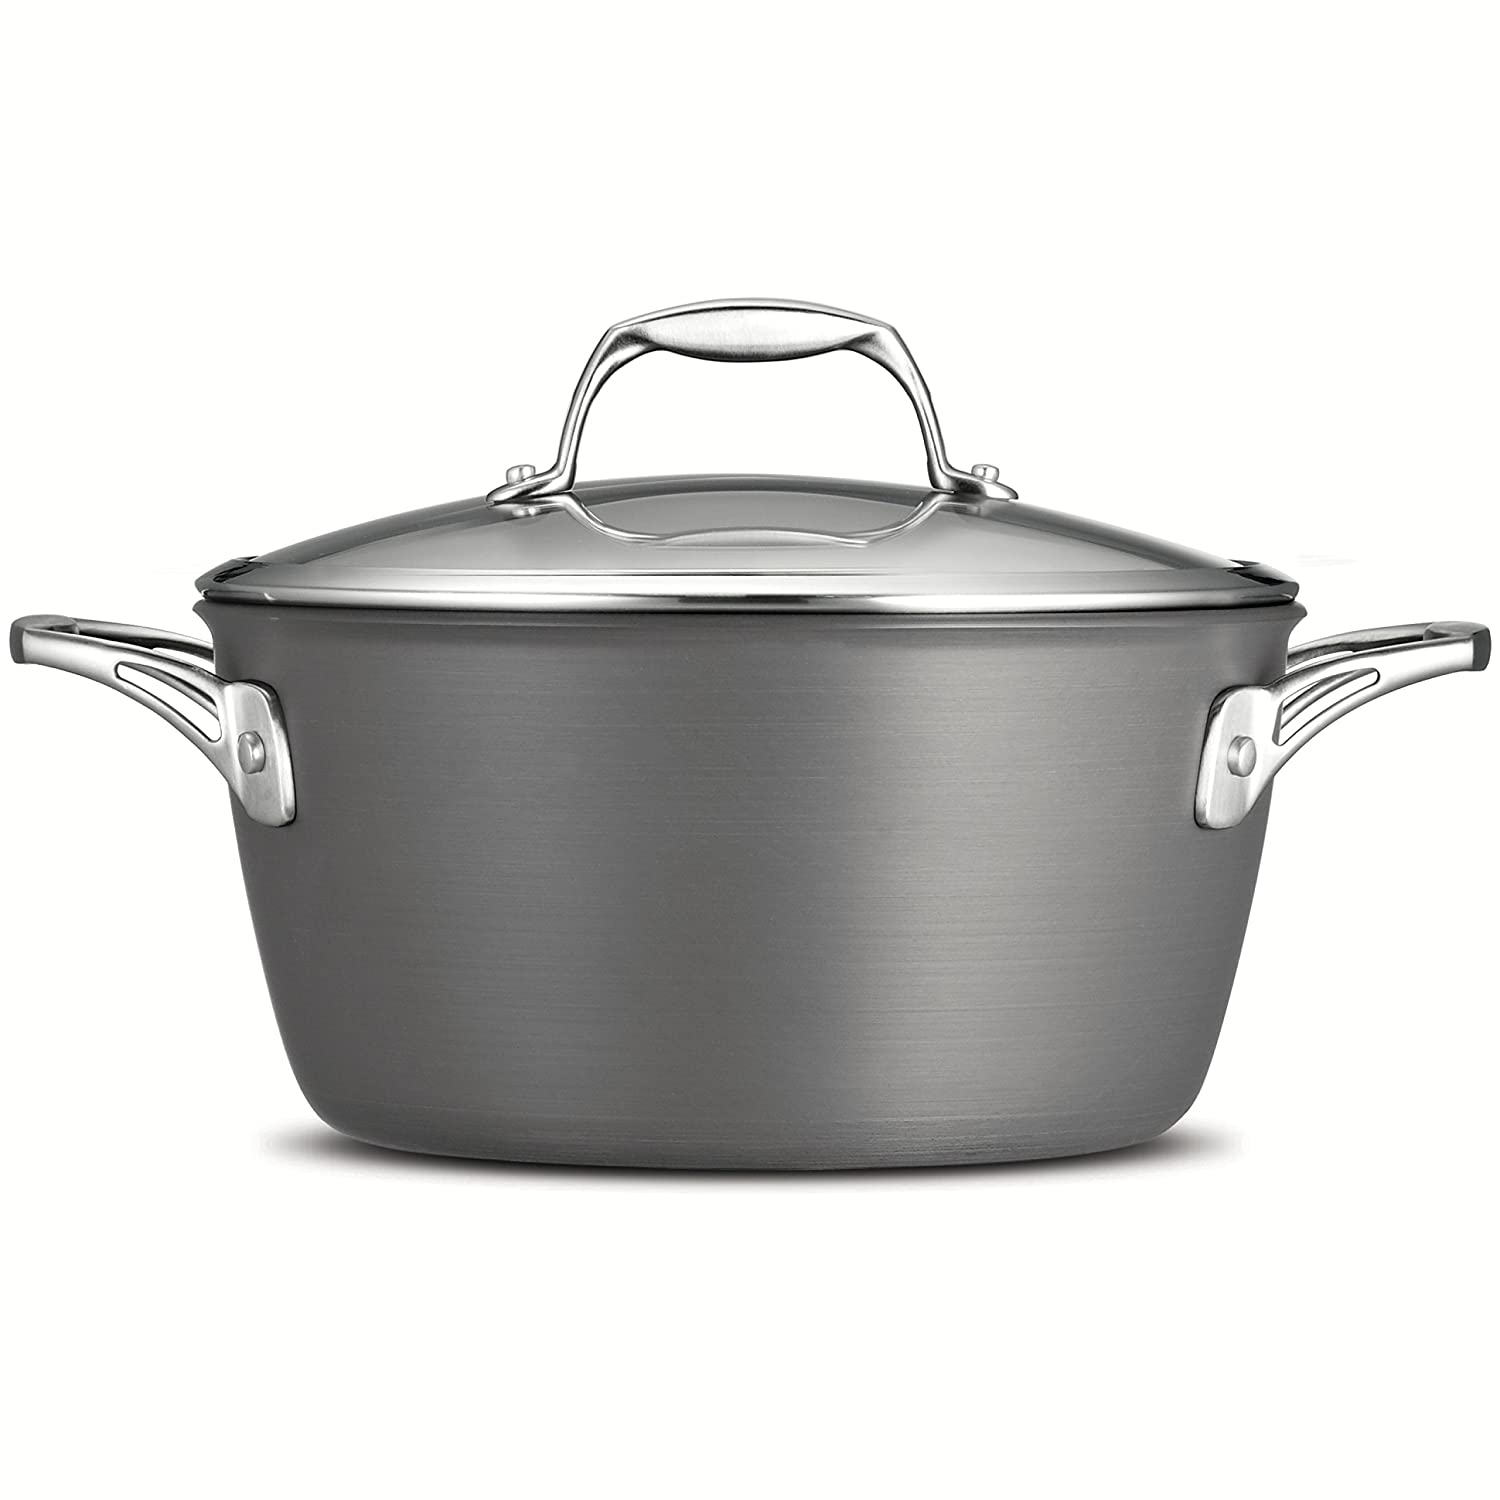 Tramontina 80123/042DSGourmet Heavy-Gauge Aluminum Nonstick Covered Dutch Oven, 5-Quart, Hard Anodized